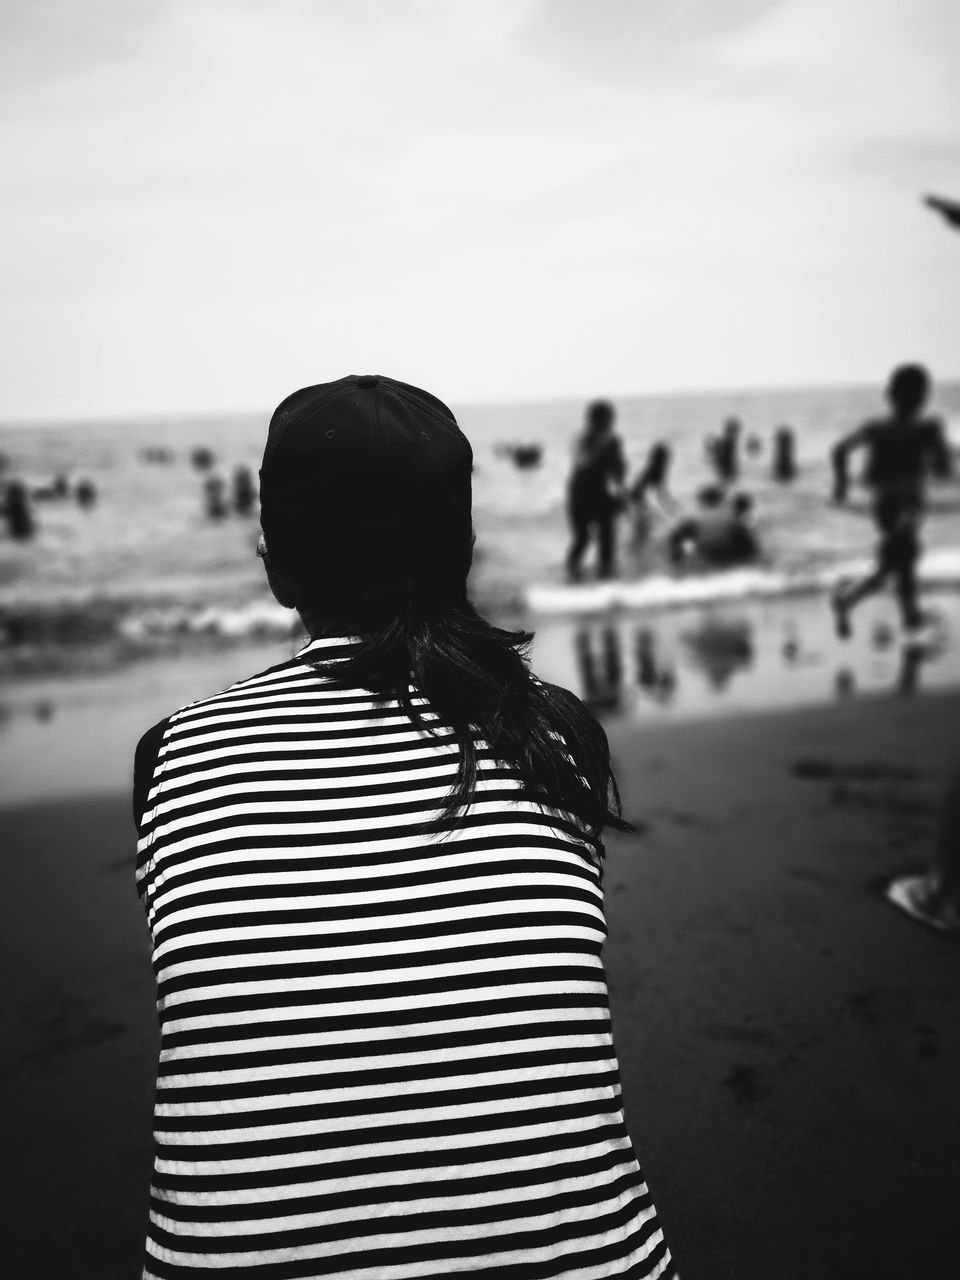 rear view, real people, beach, striped, sea, focus on foreground, sand, women, nature, standing, leisure activity, water, vacations, outdoors, horizon over water, scenics, lifestyles, tranquility, one person, day, sky, beauty in nature, adult, people